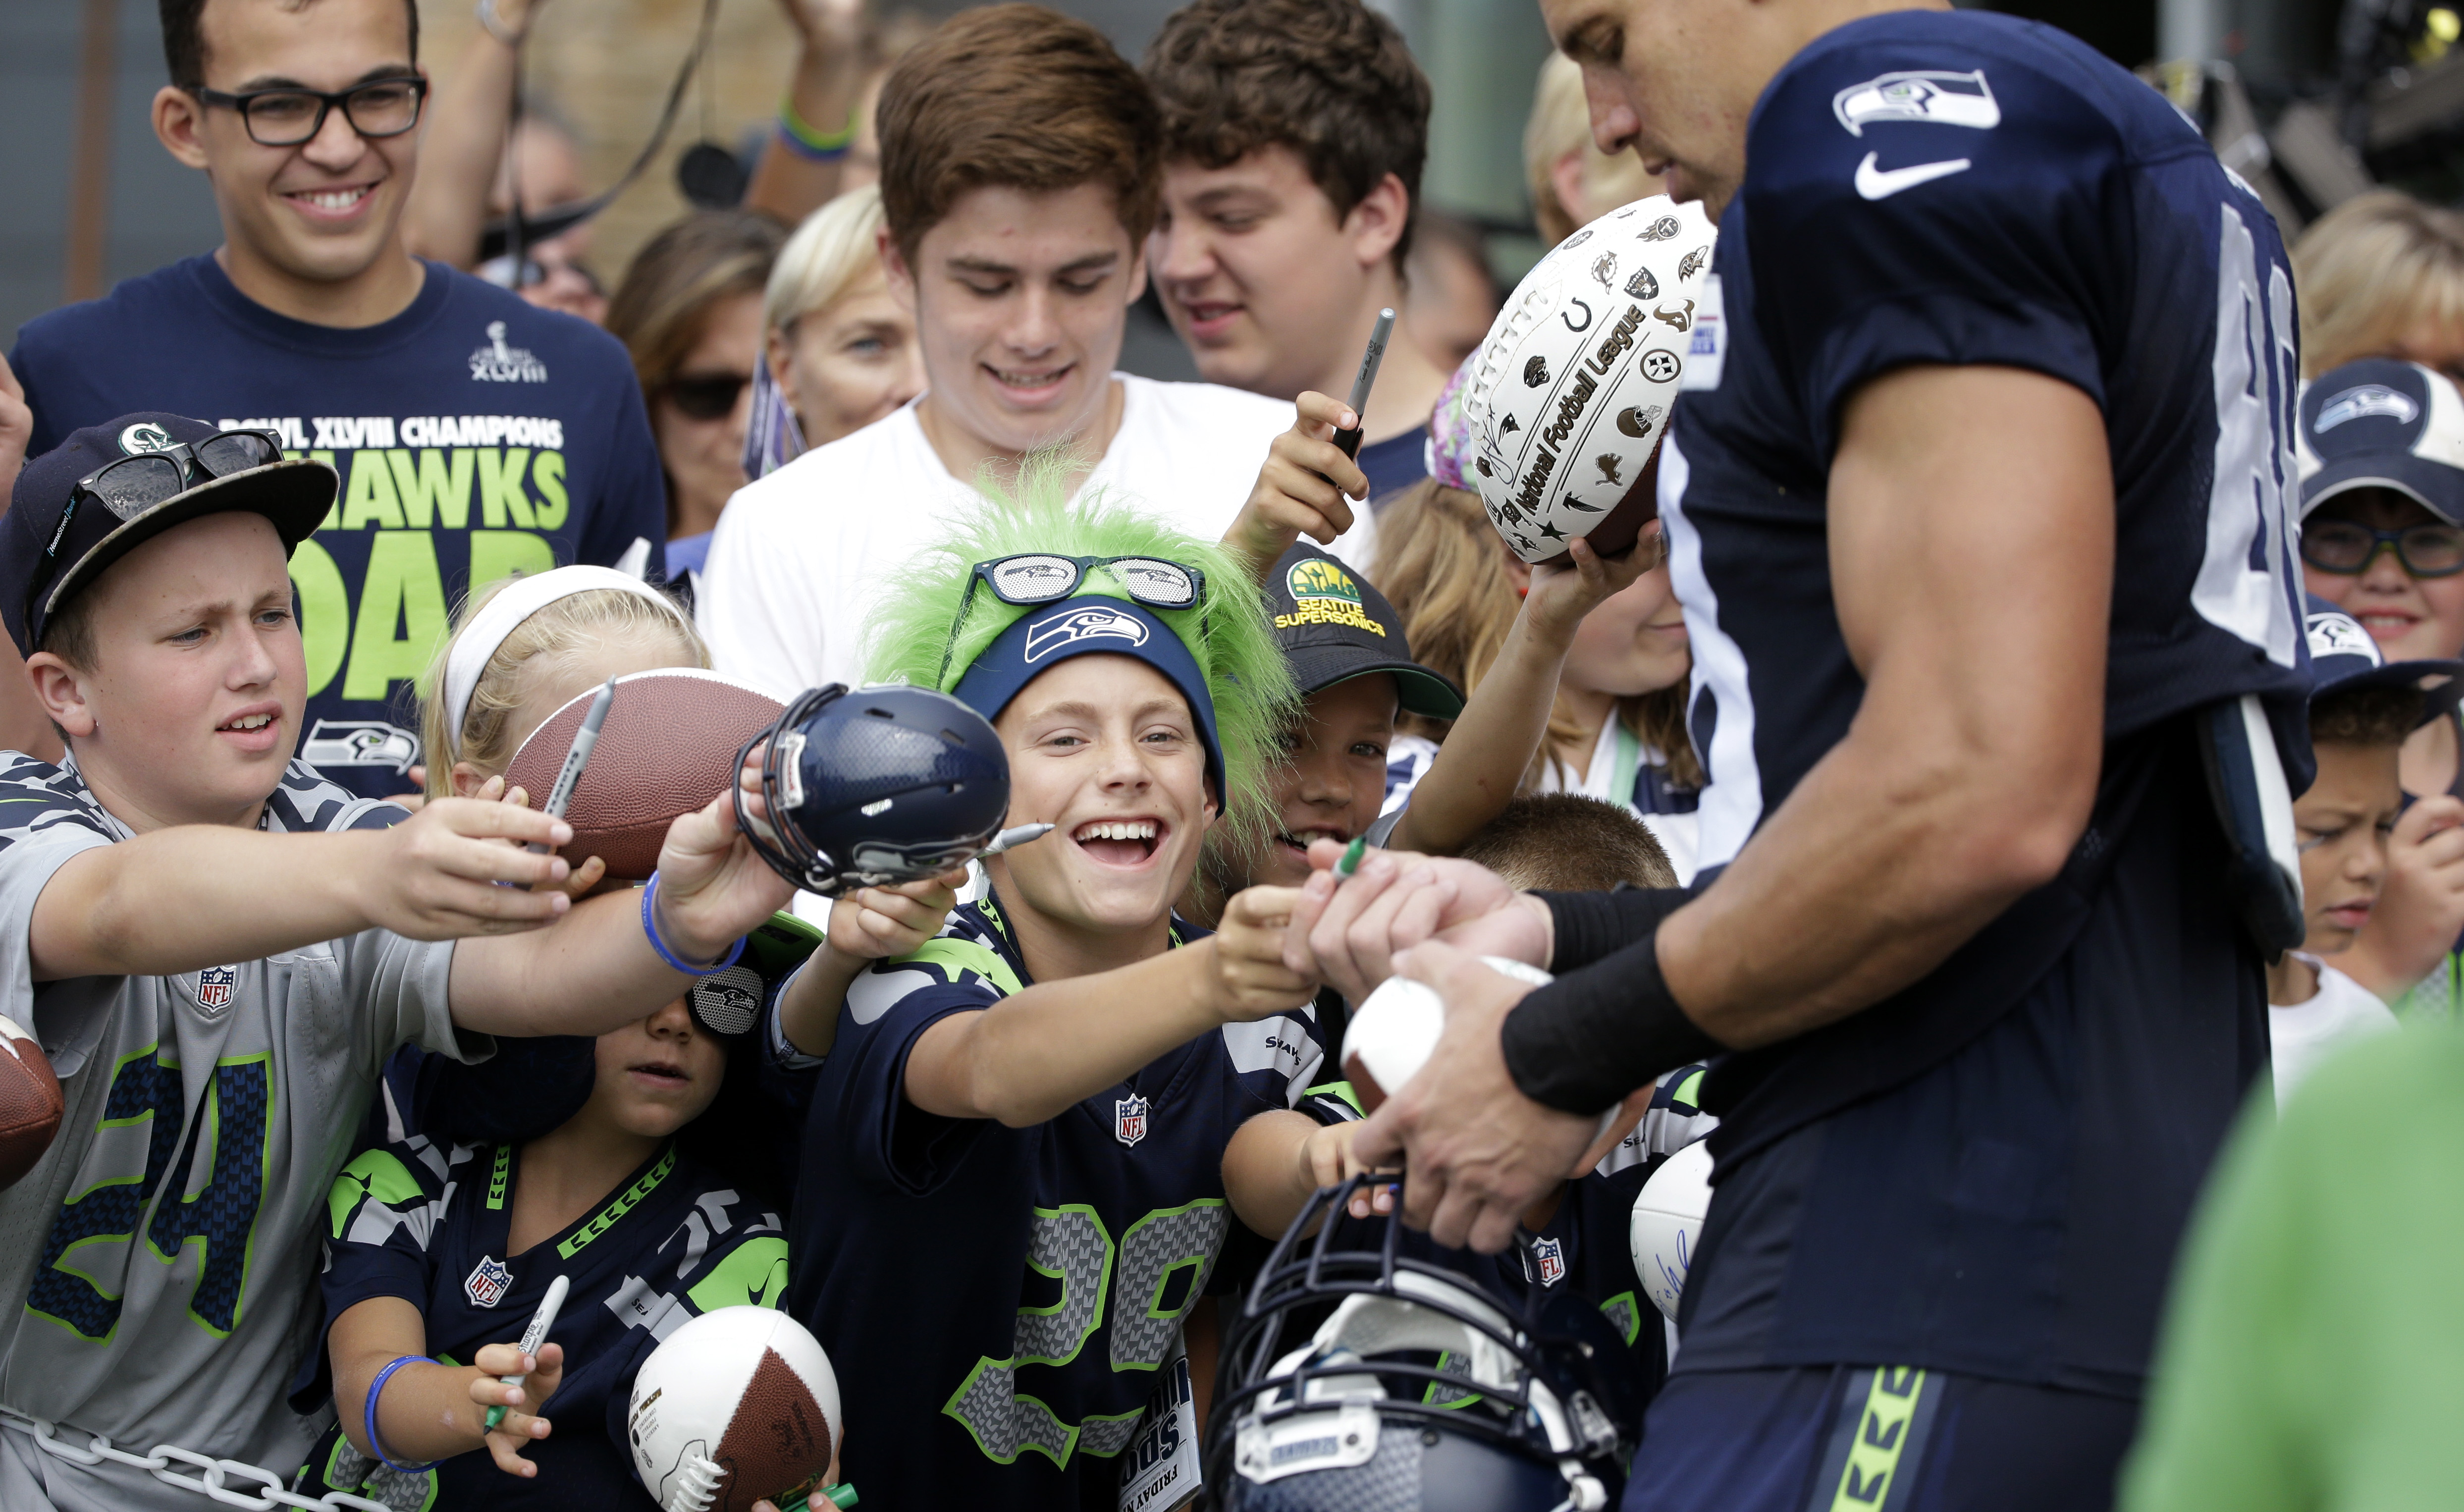 Seattle Seahawks fans reach toward Jimmy Graham for an autograph after an NFL football training camp Monday, Aug. 3, 2015, in Renton, Wash. (AP Photo/Elaine Thompson)